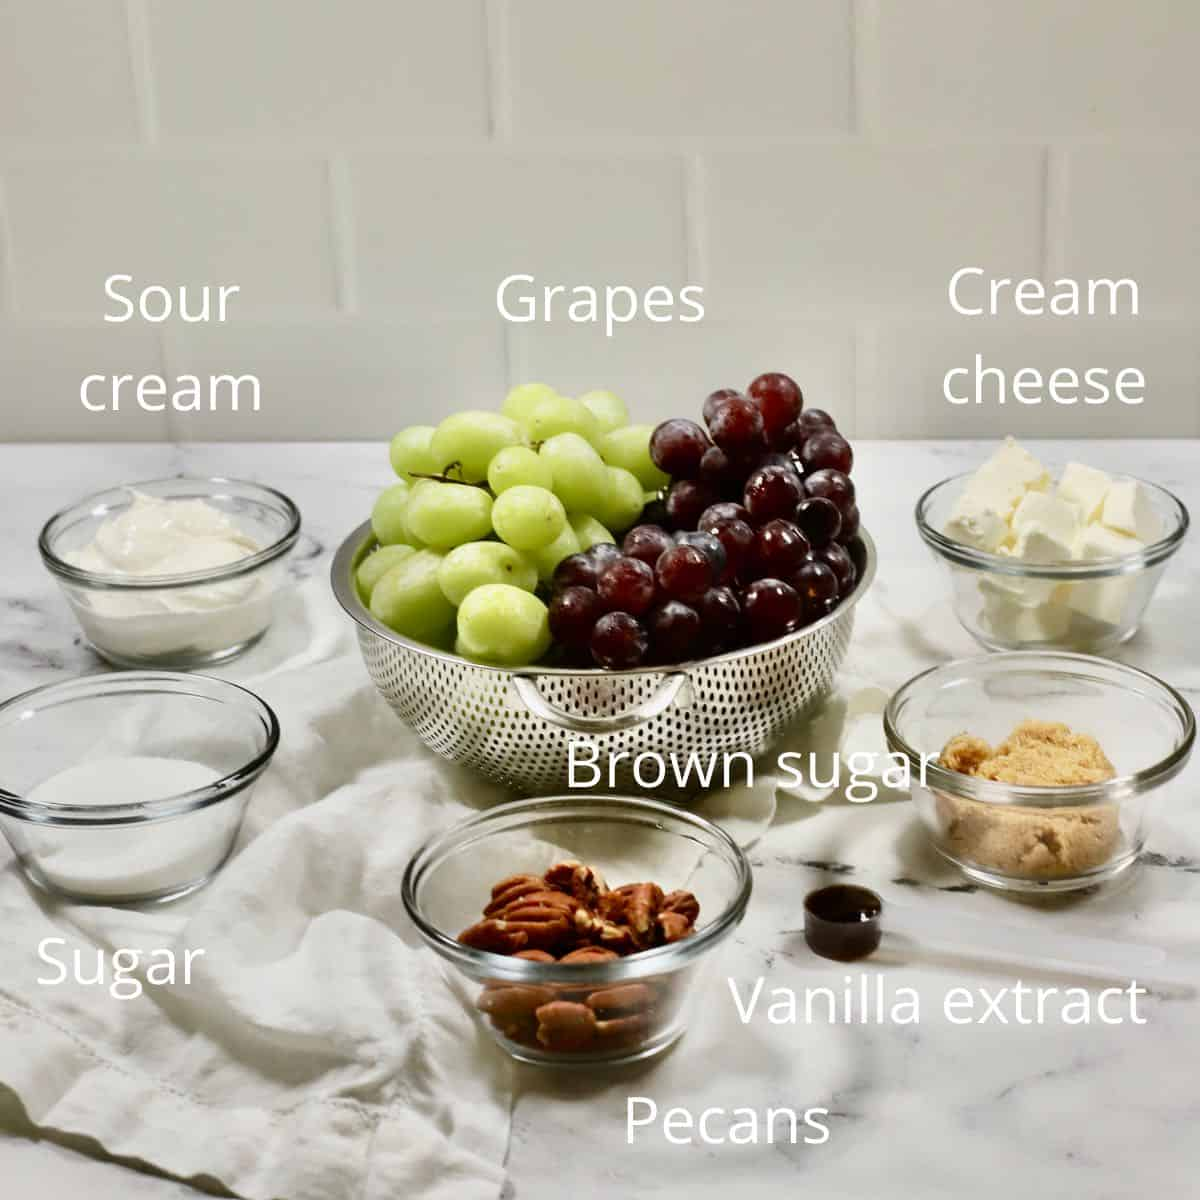 Grapes in a colander, and bowls of sugar, sour cream, and cream cheese.